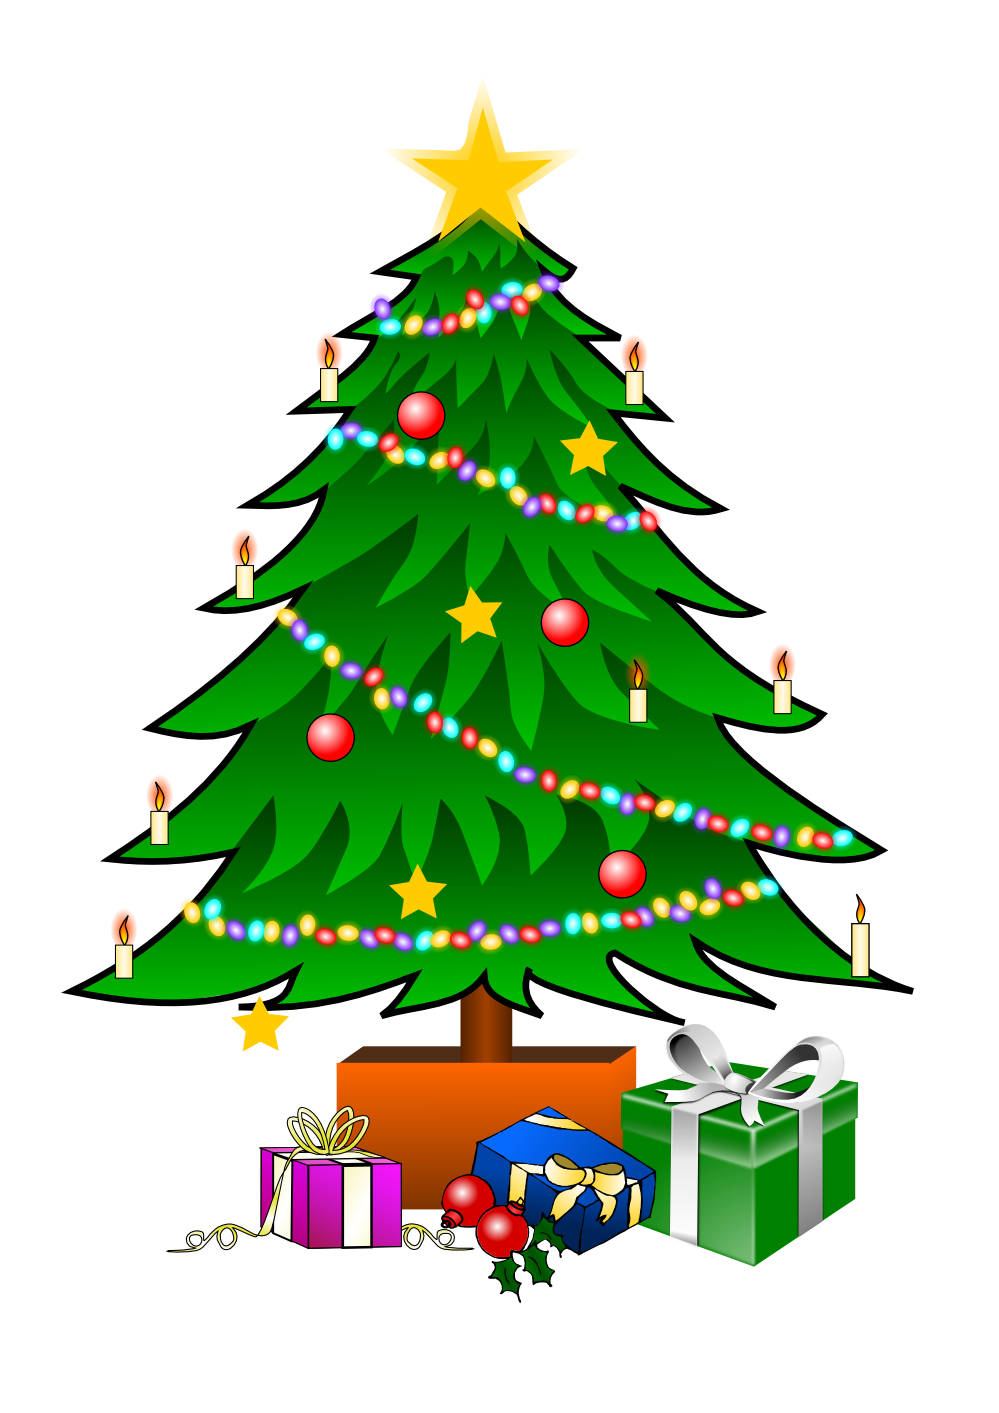 999x1413 This Nice Christmas Tree With Presents Clip Art Can Be Used